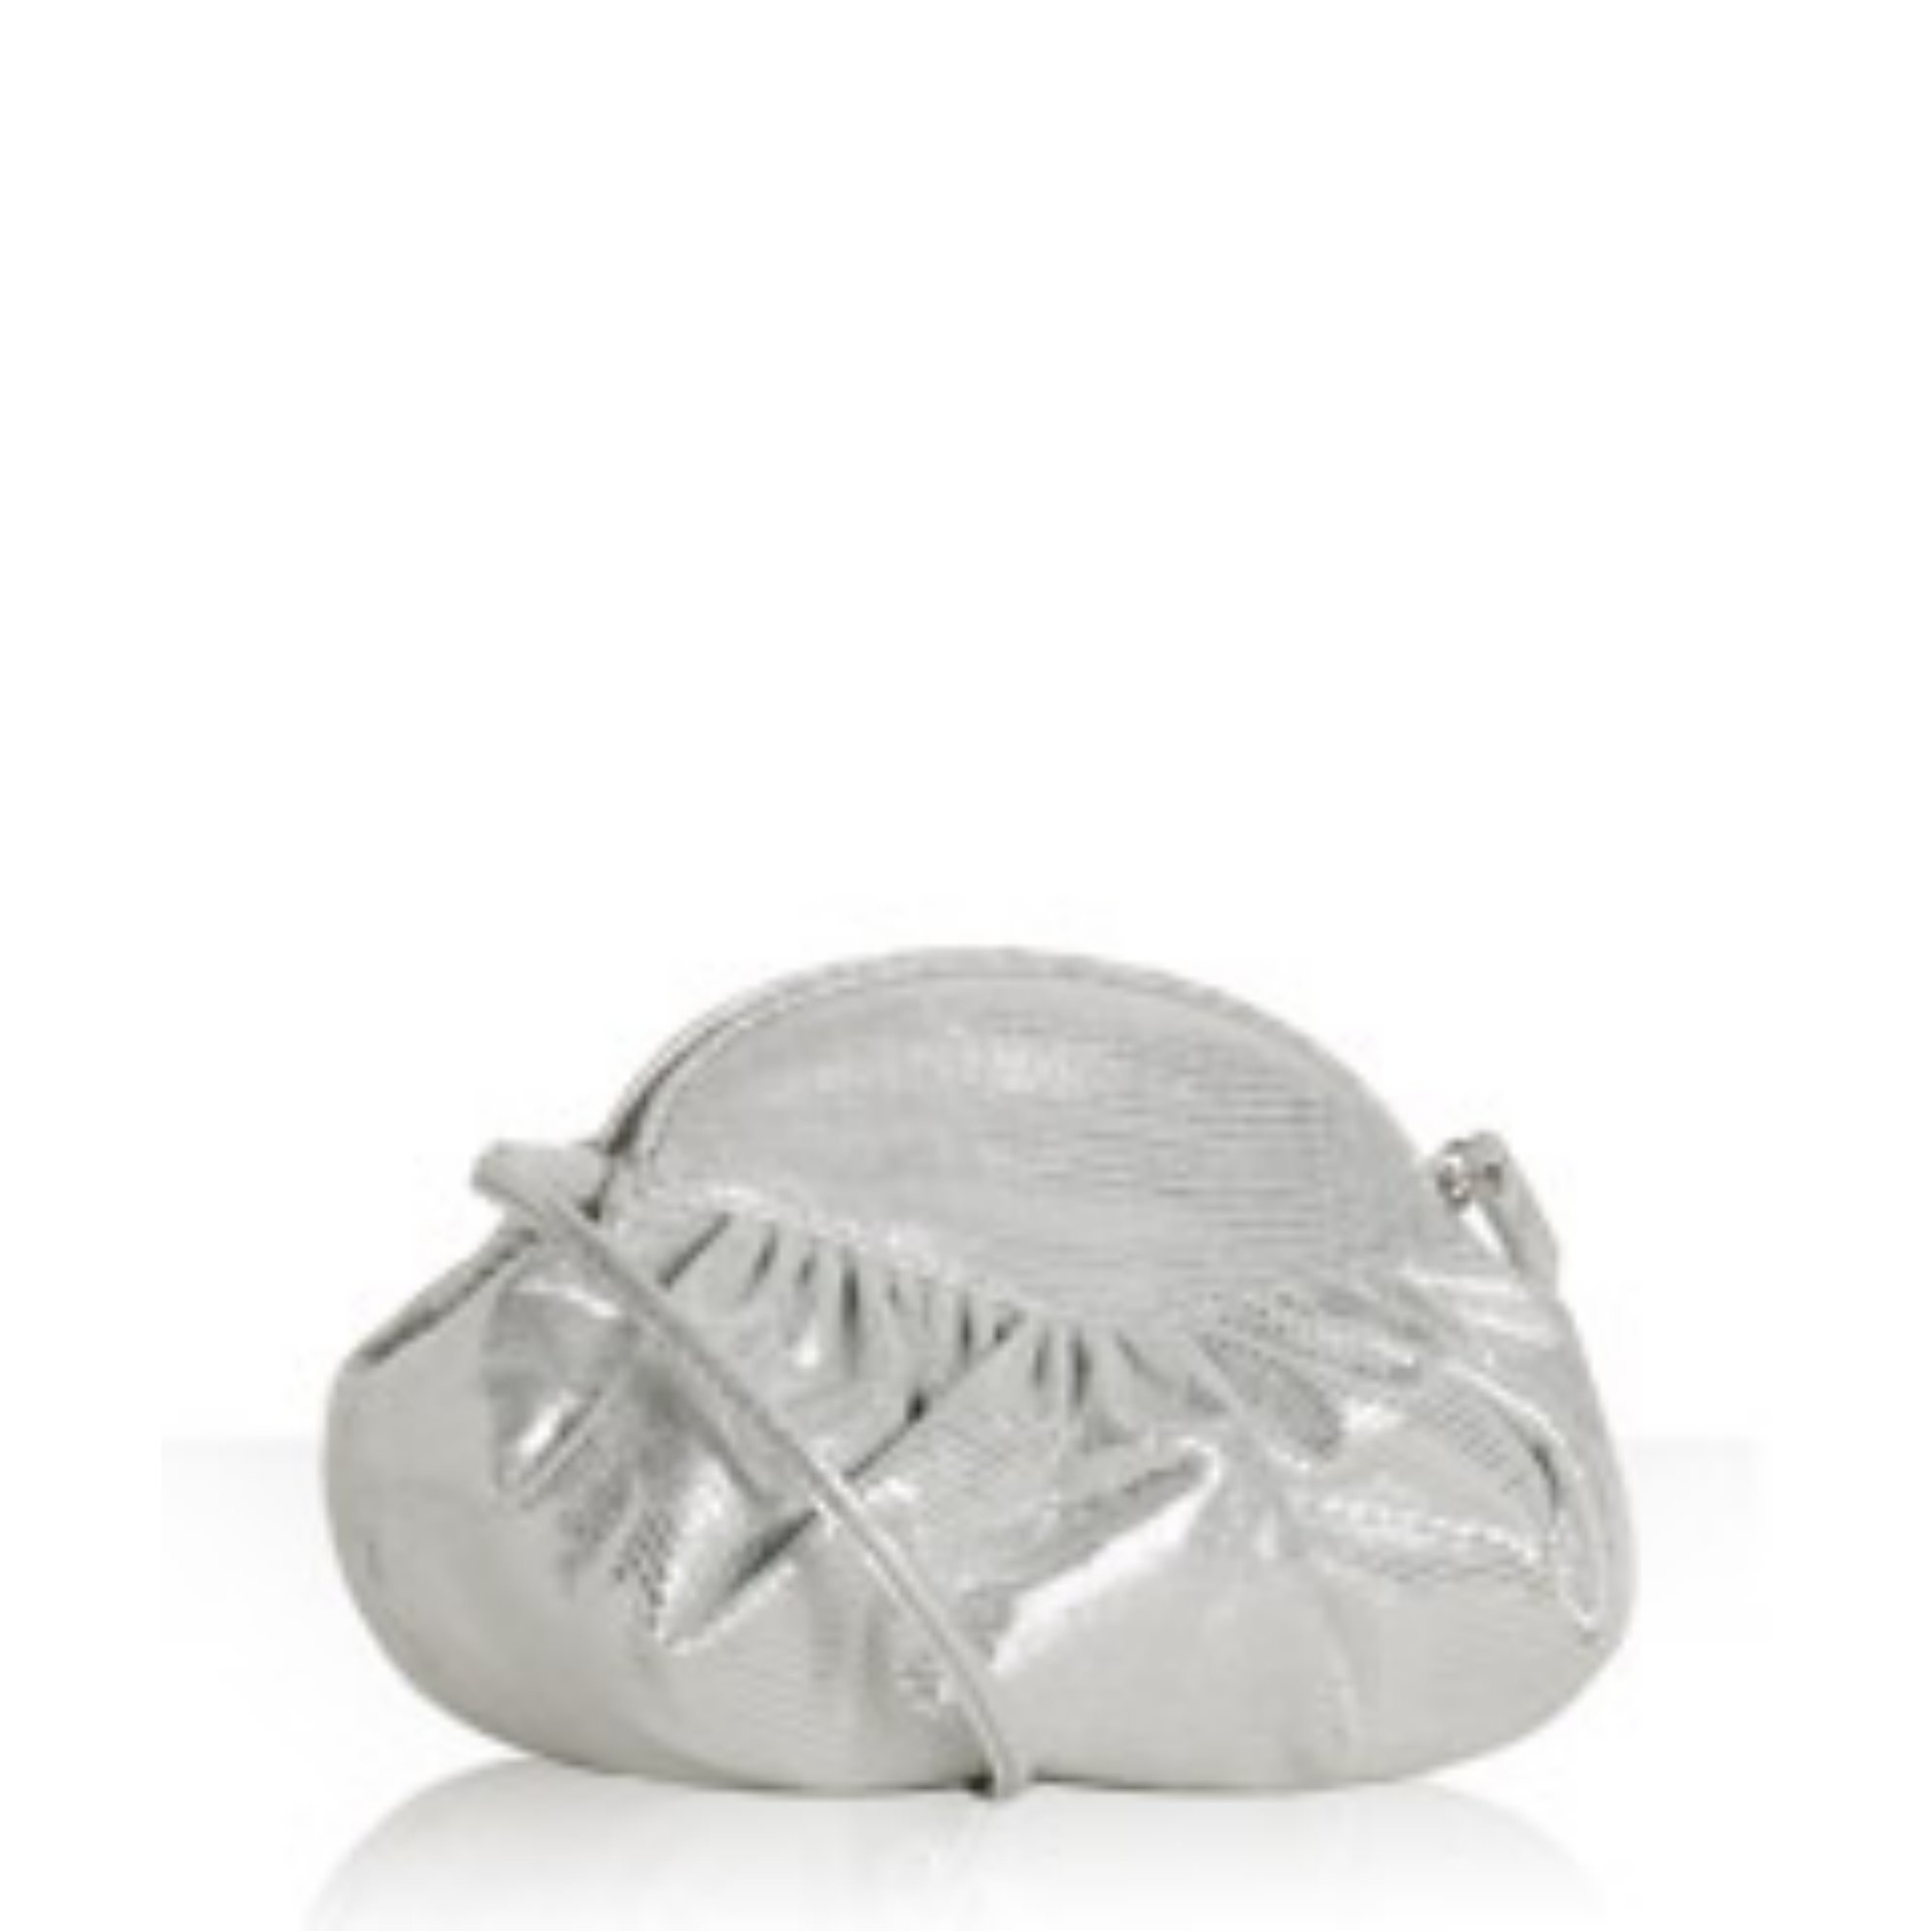 silver lizard suede 'Nite Crush' clutch